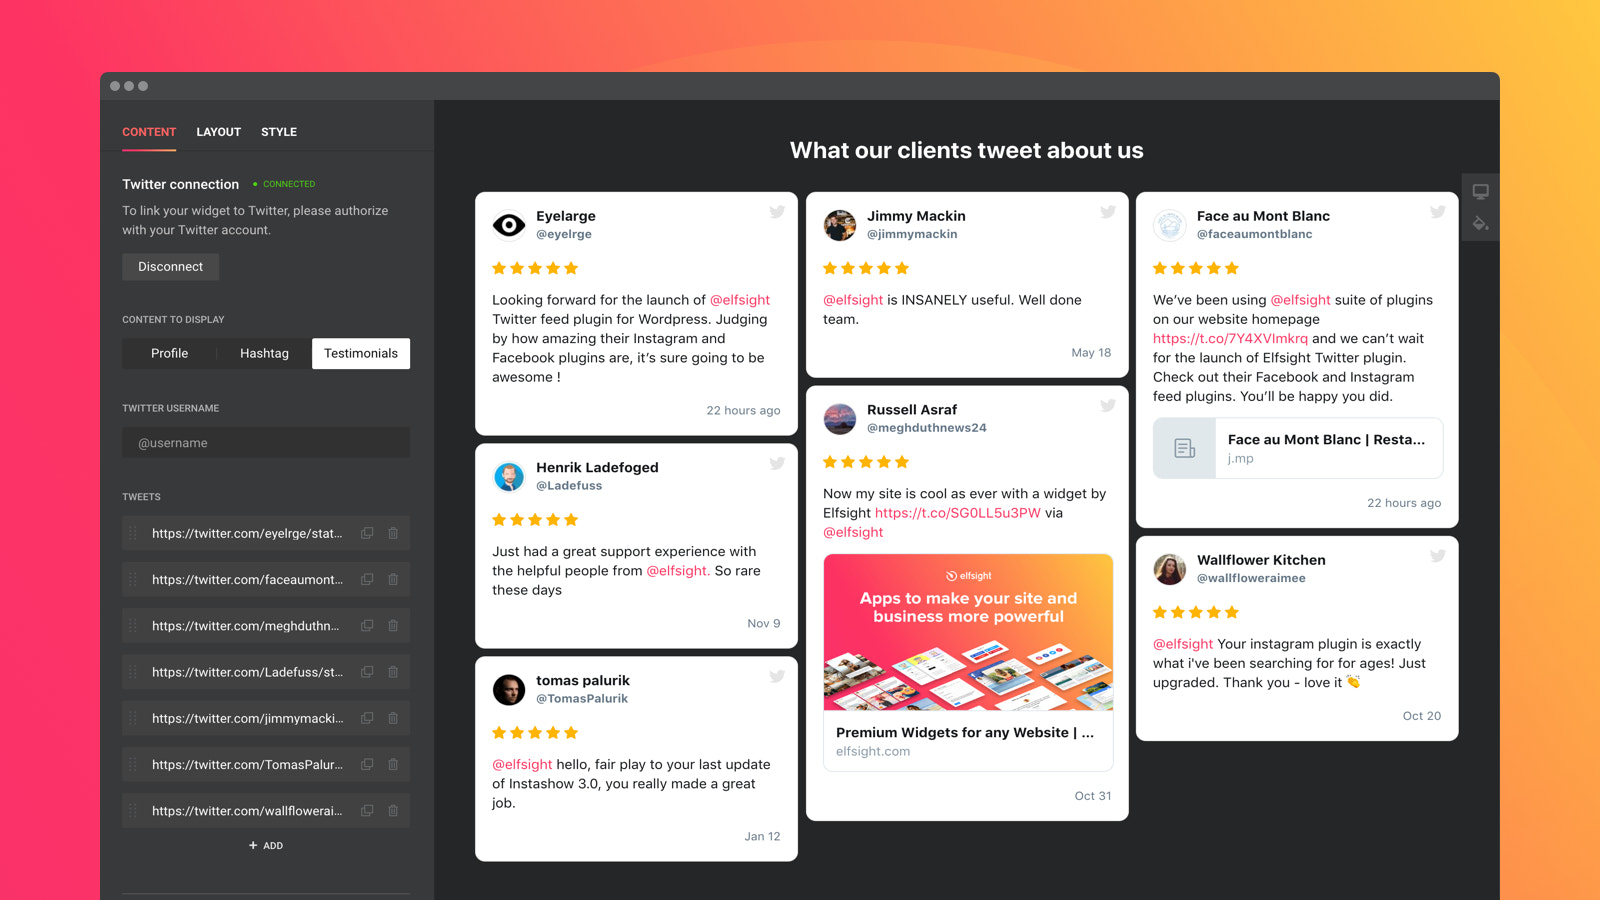 Display testimonial Twitter Tweets by URLs and add star rating